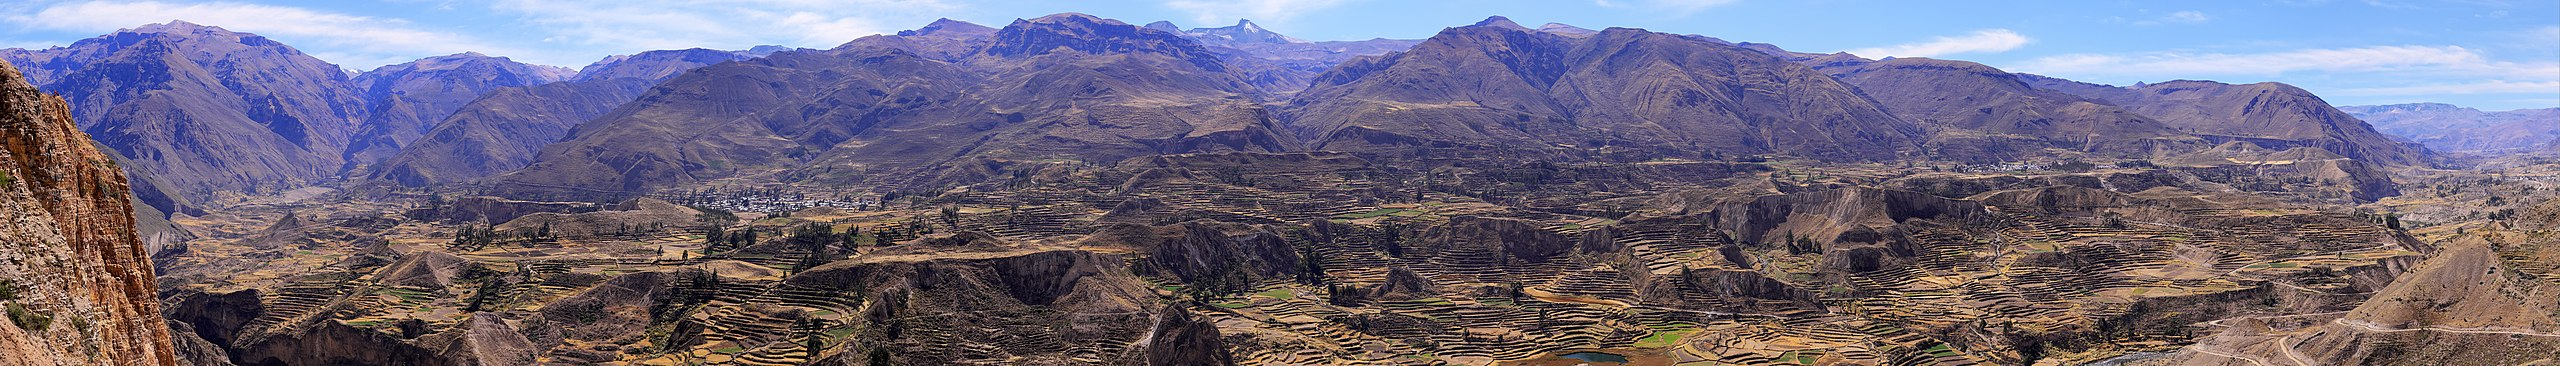 colca canyon travel guide at wikivoyage